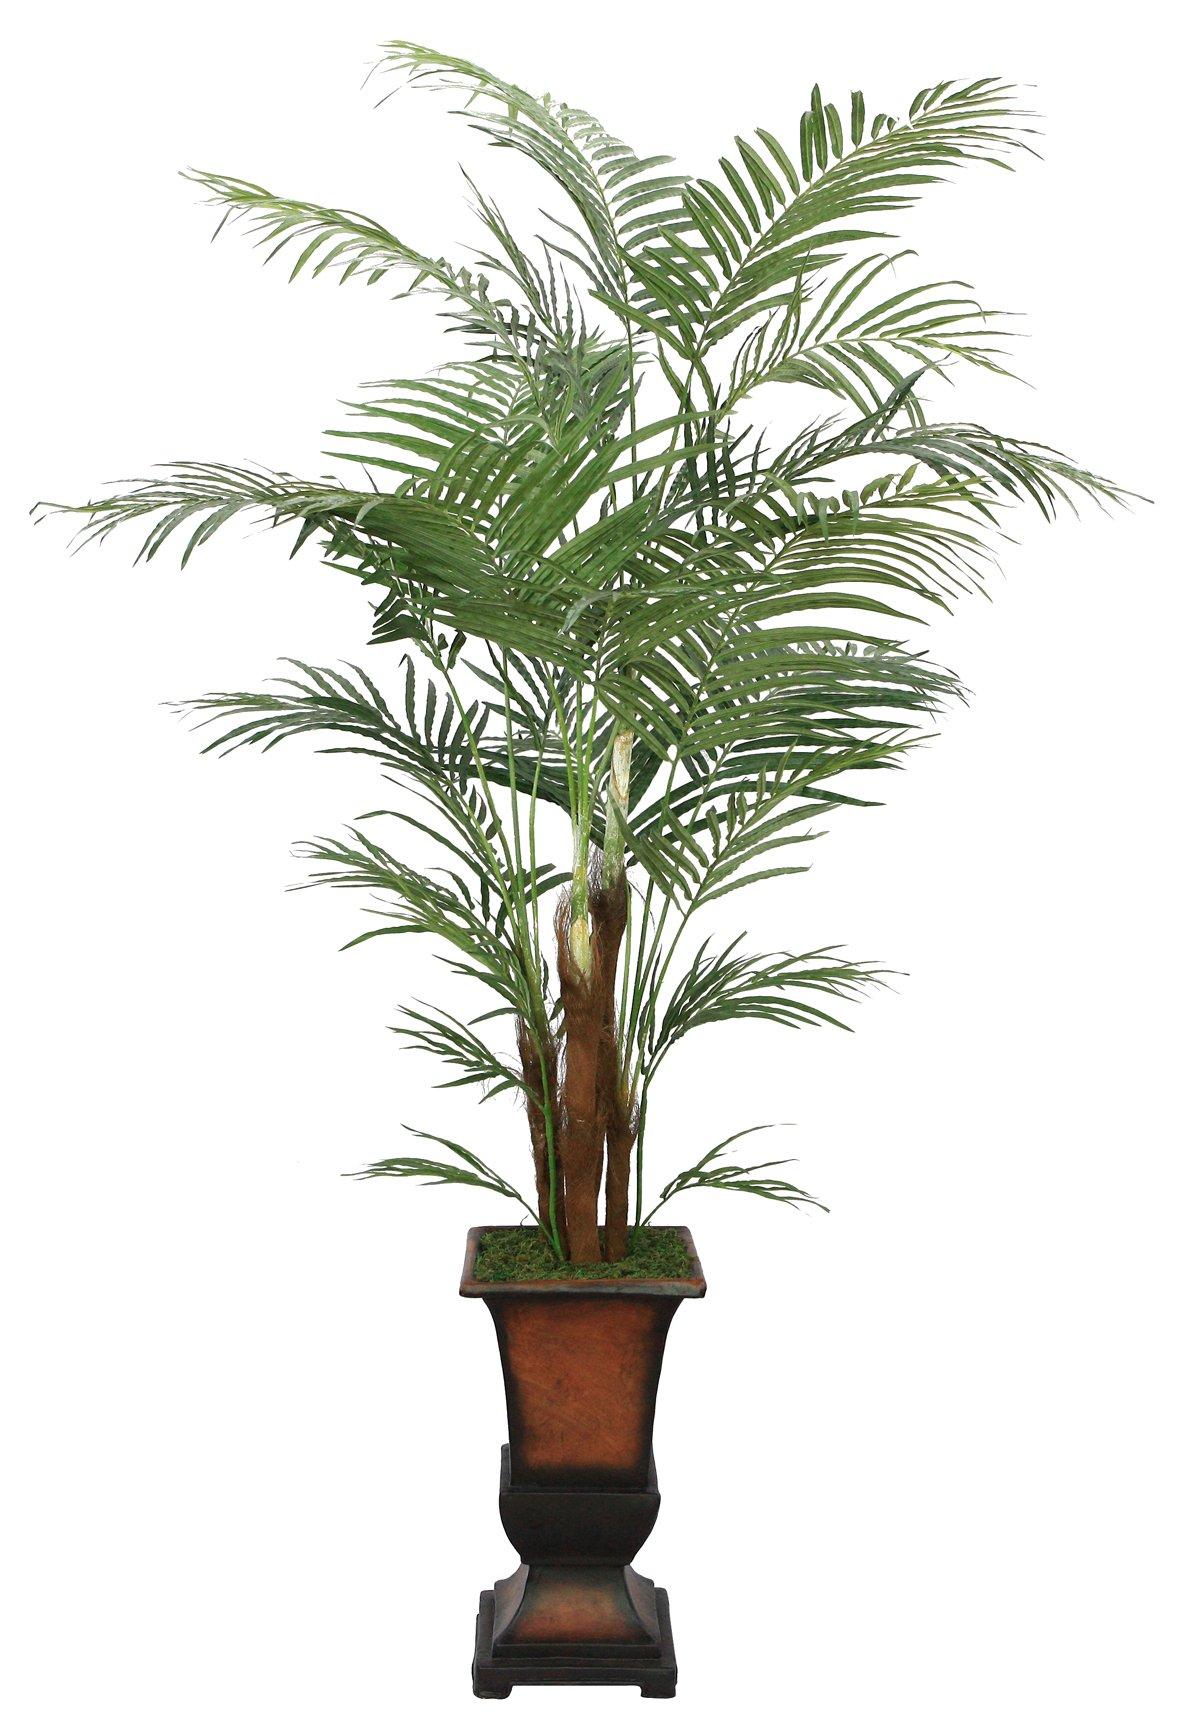 Laura Ashley 7 Foot Tall High End Realistic Silk Areca Palm Tree with Decorative Planter